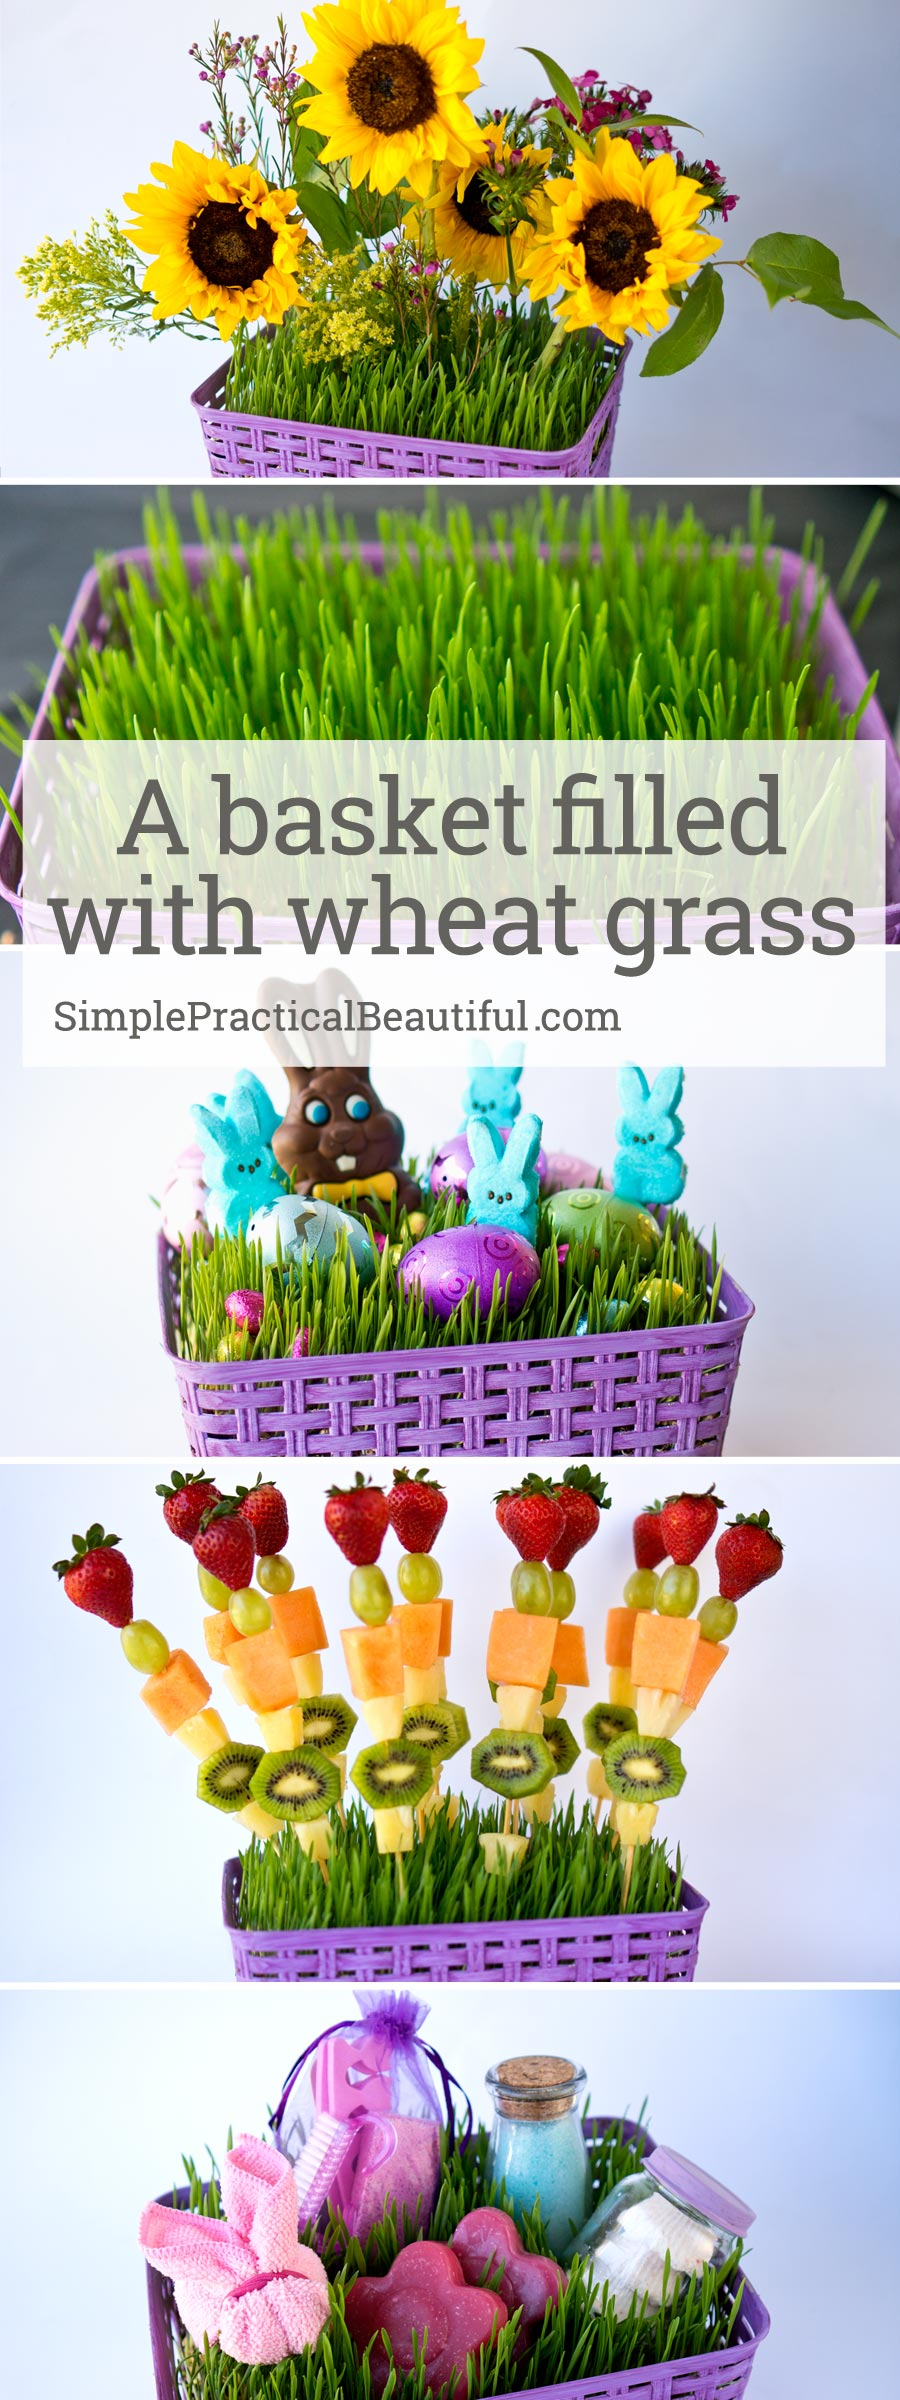 Make a beautiful DIY basket for Easter filled with living grass | centerpiece idea | brunch fruit recipe | Easter basket idea | grow wheat grass